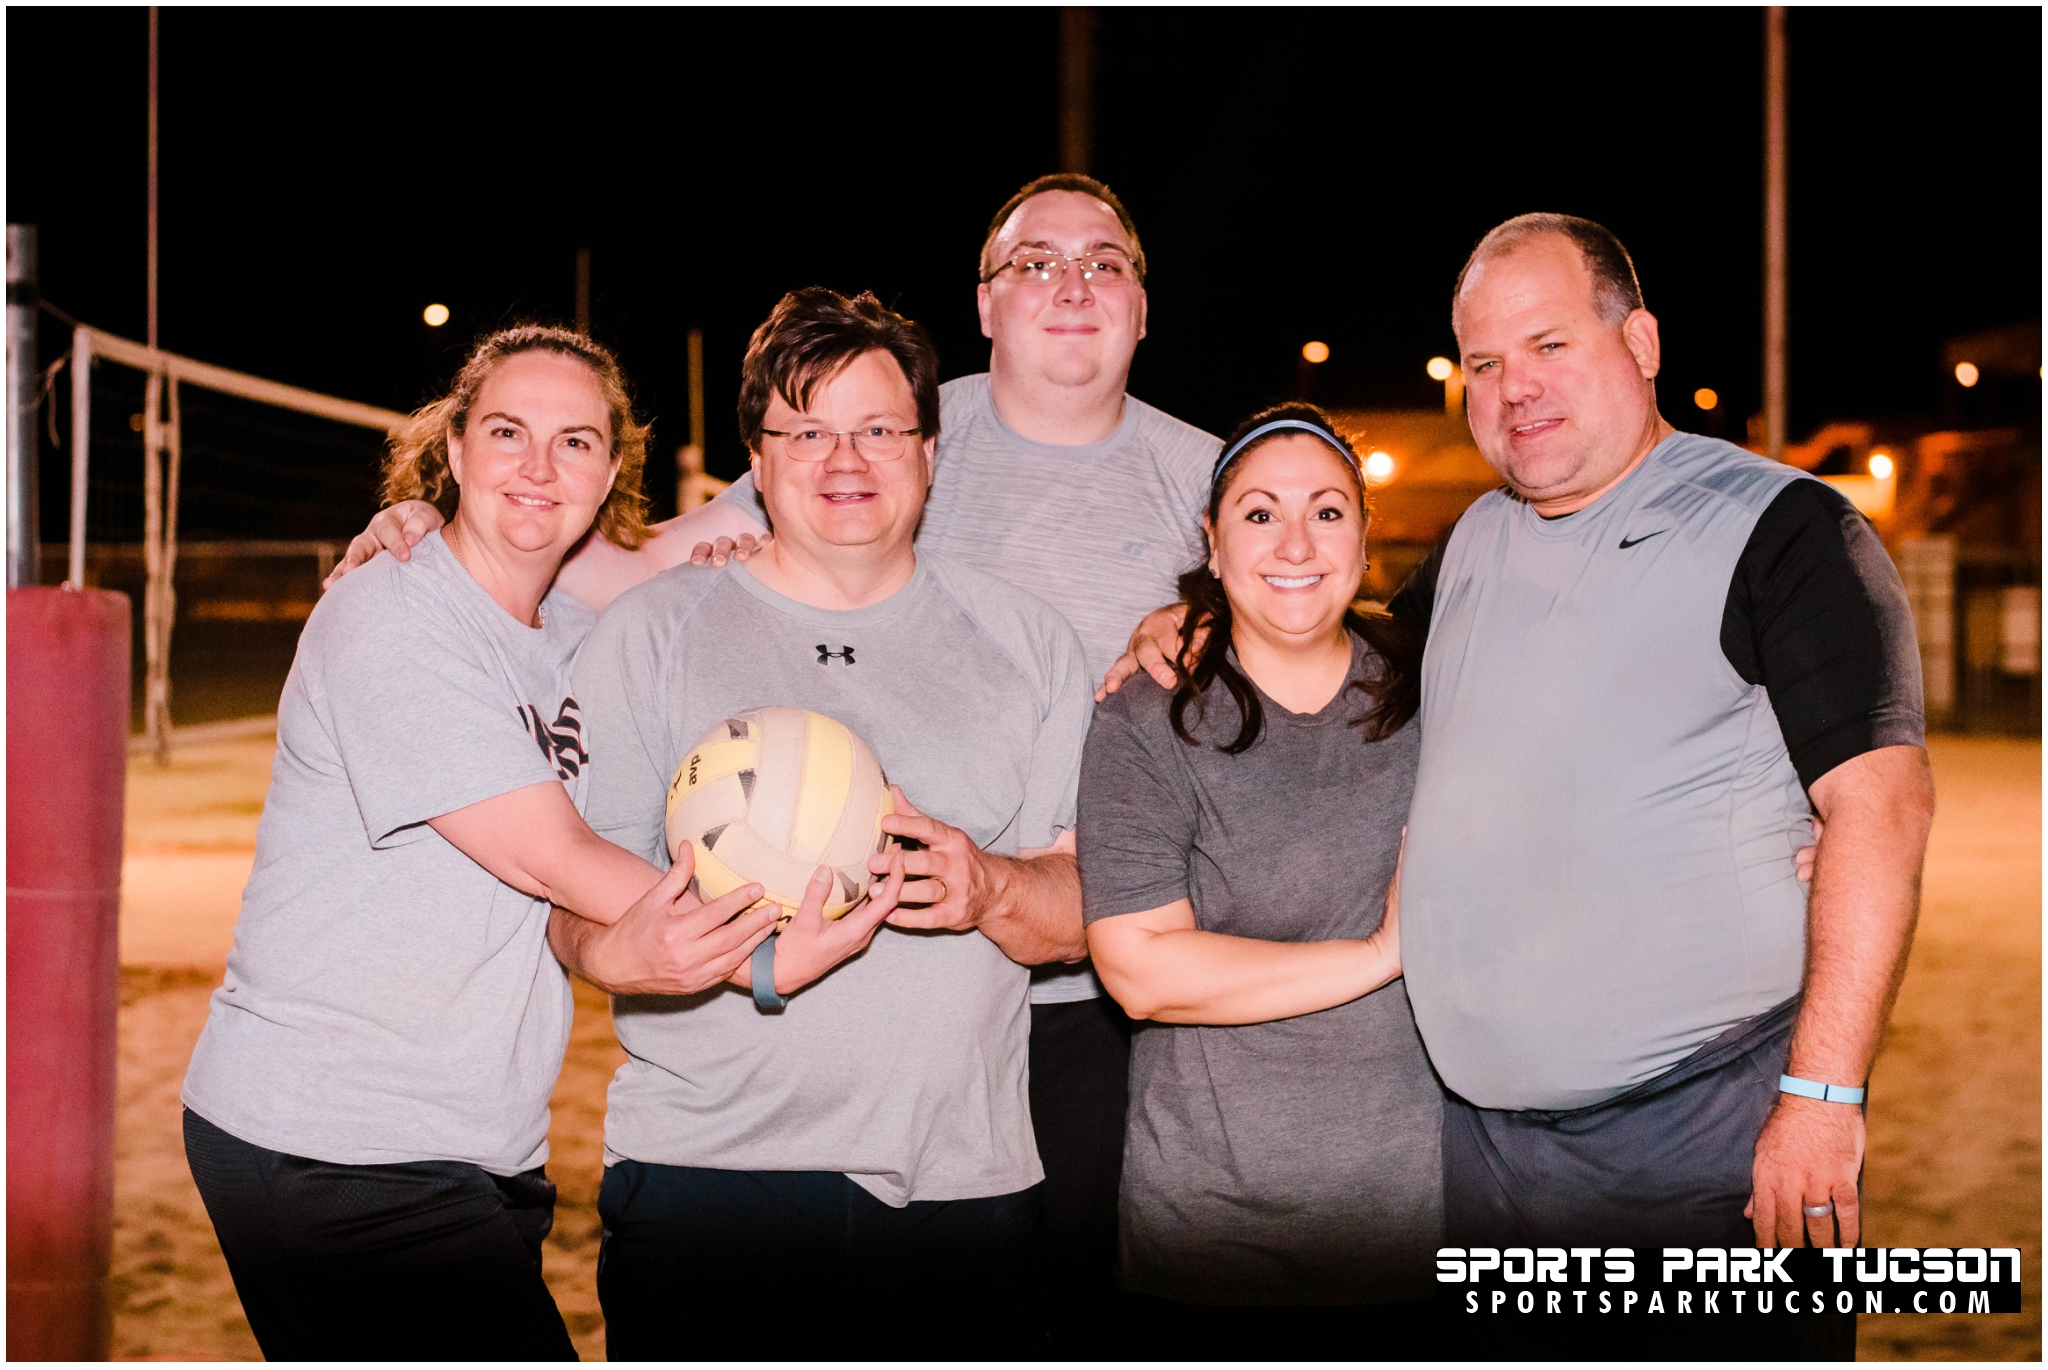 Volleyball Wed Co-ed 4 v 4 - Silver, Team: Sandbaggers